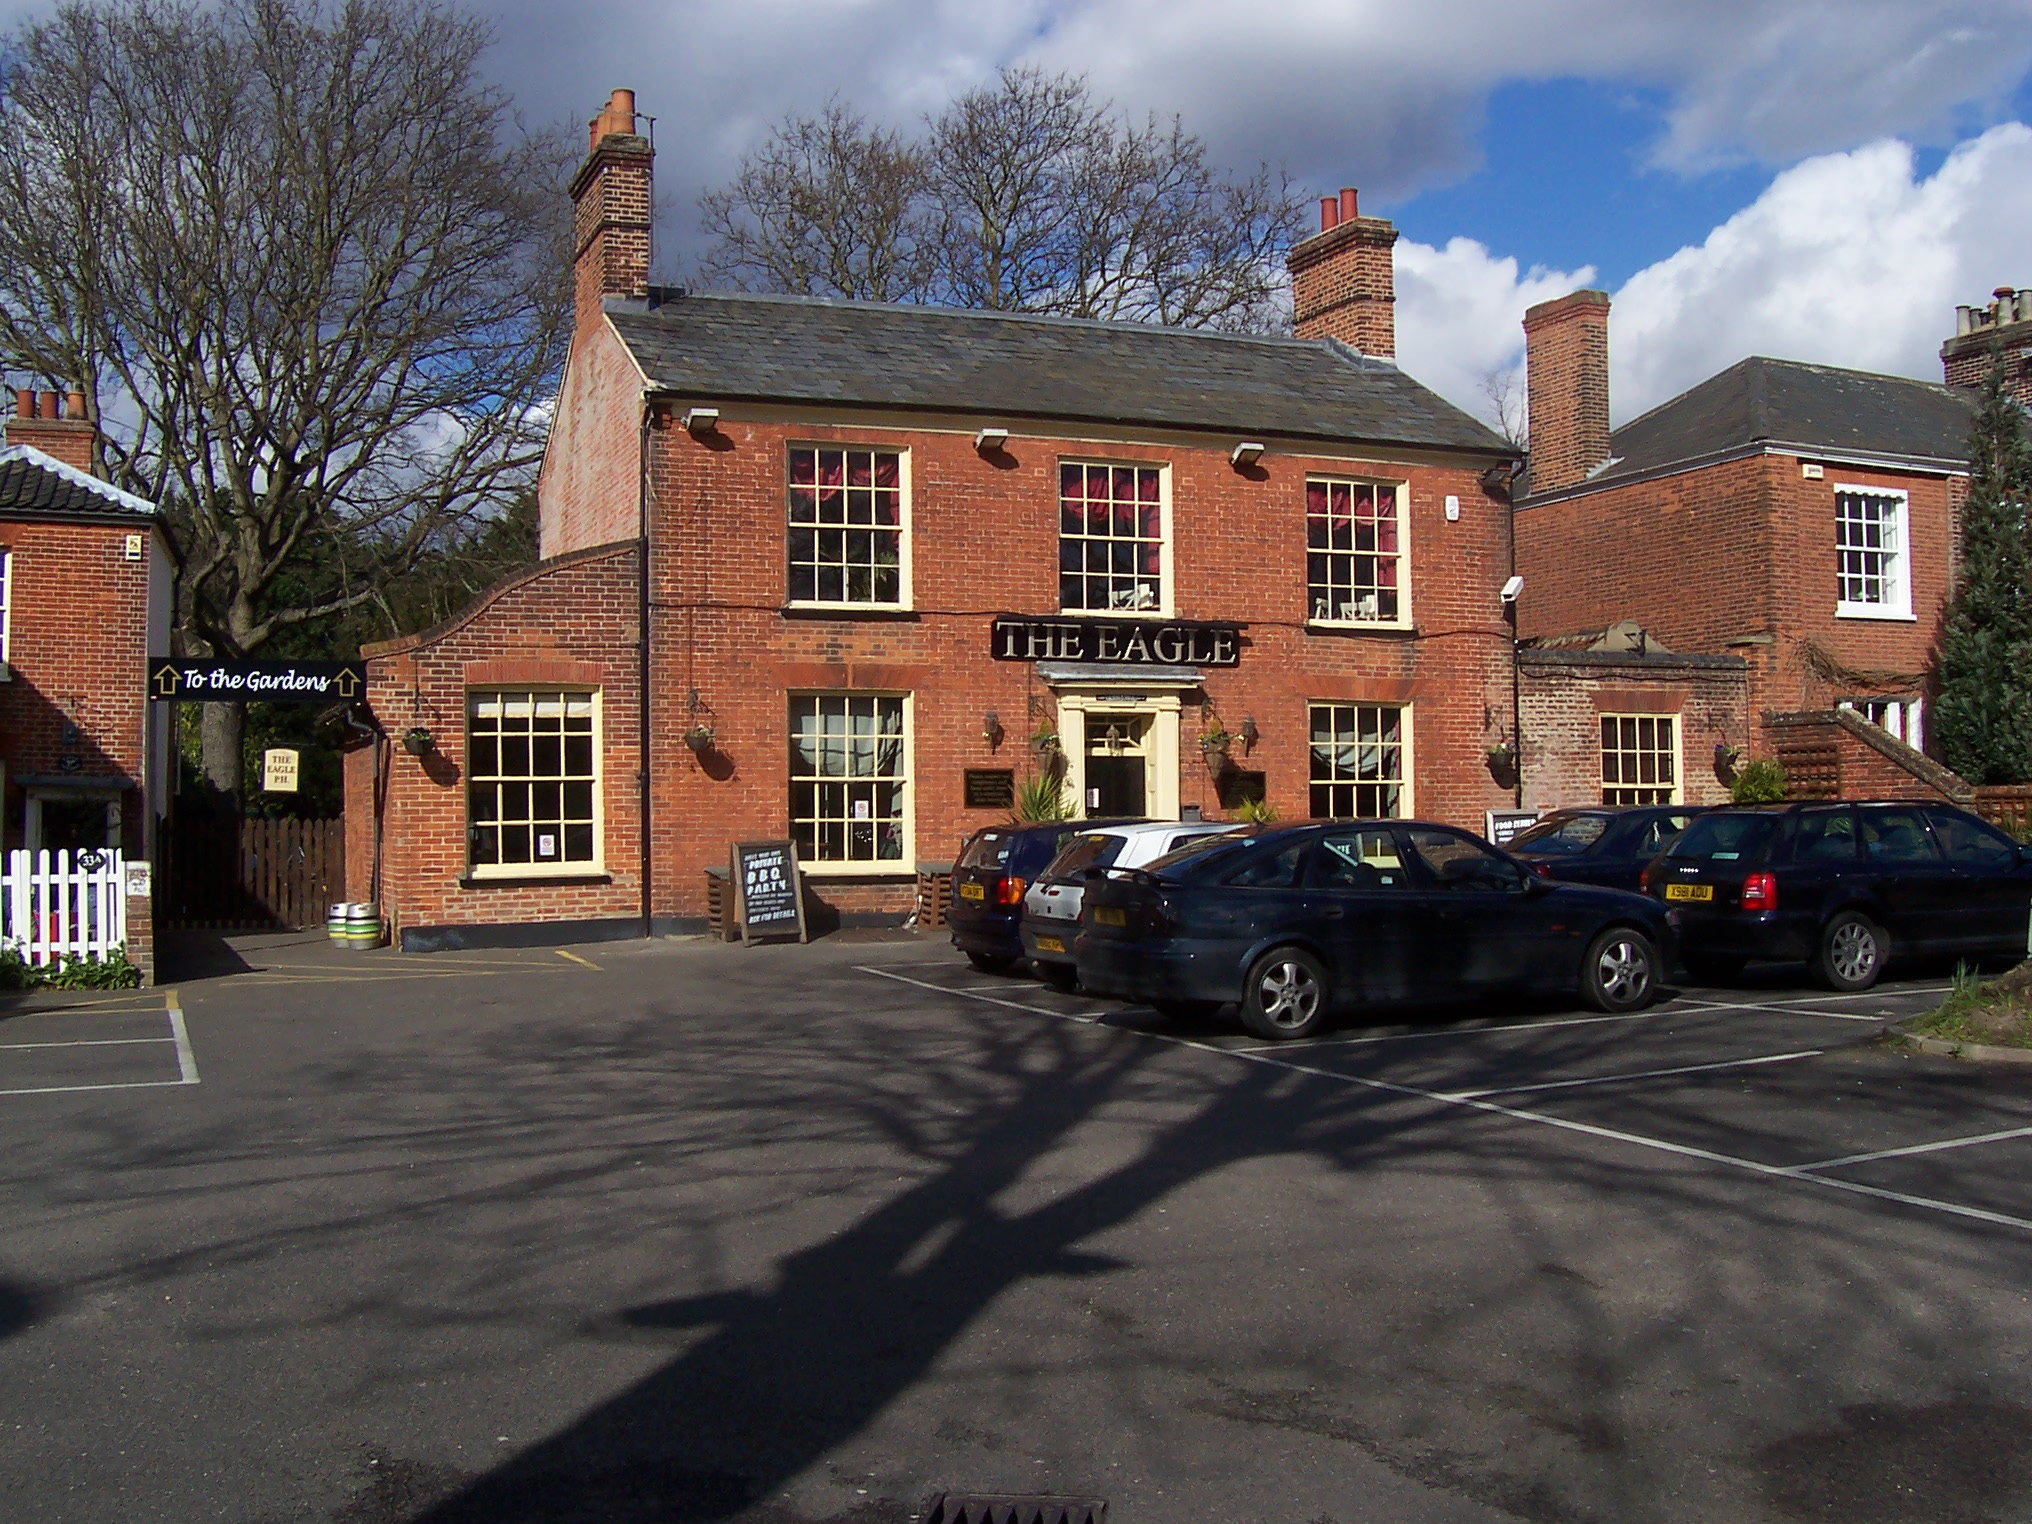 The Eagle Pub Norwich Great Food And Beer